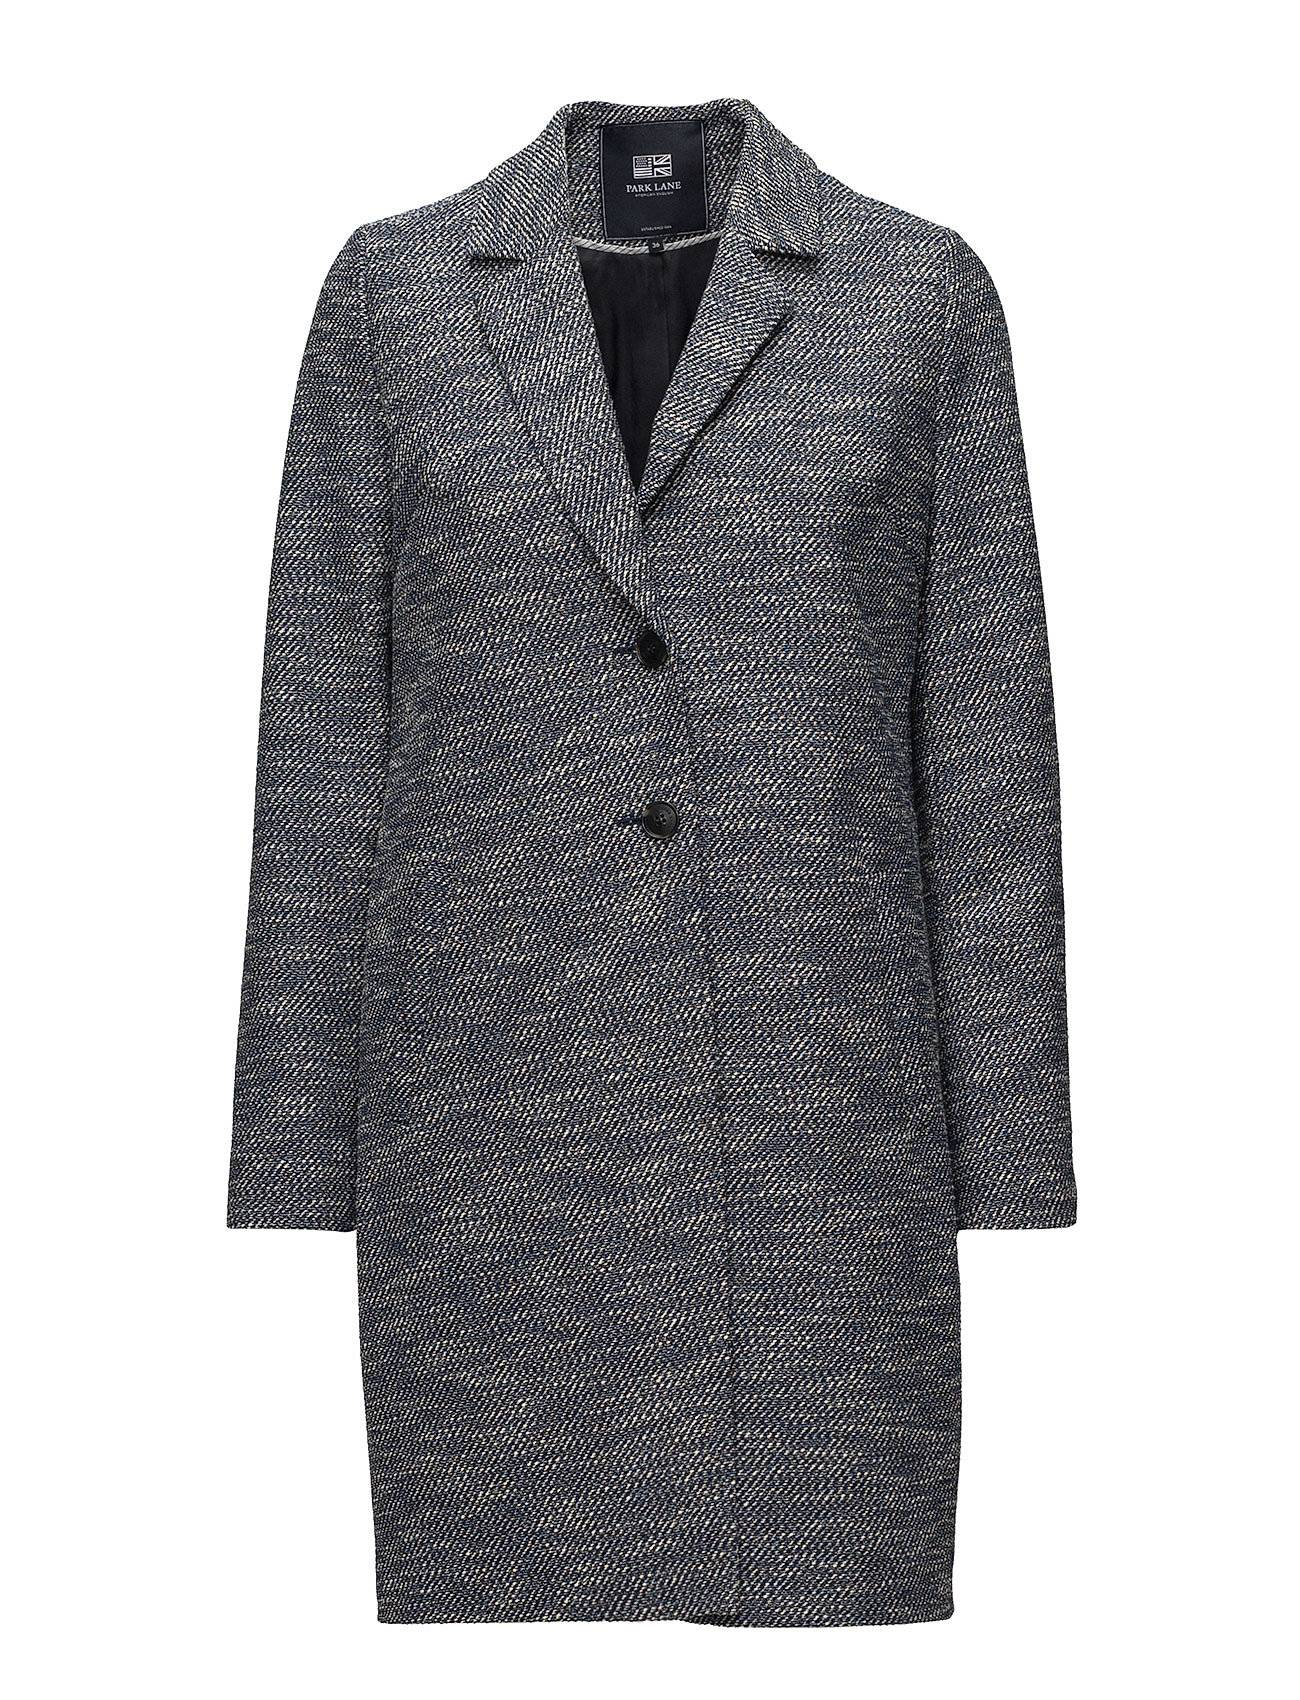 Park Lane Bouclé Coat